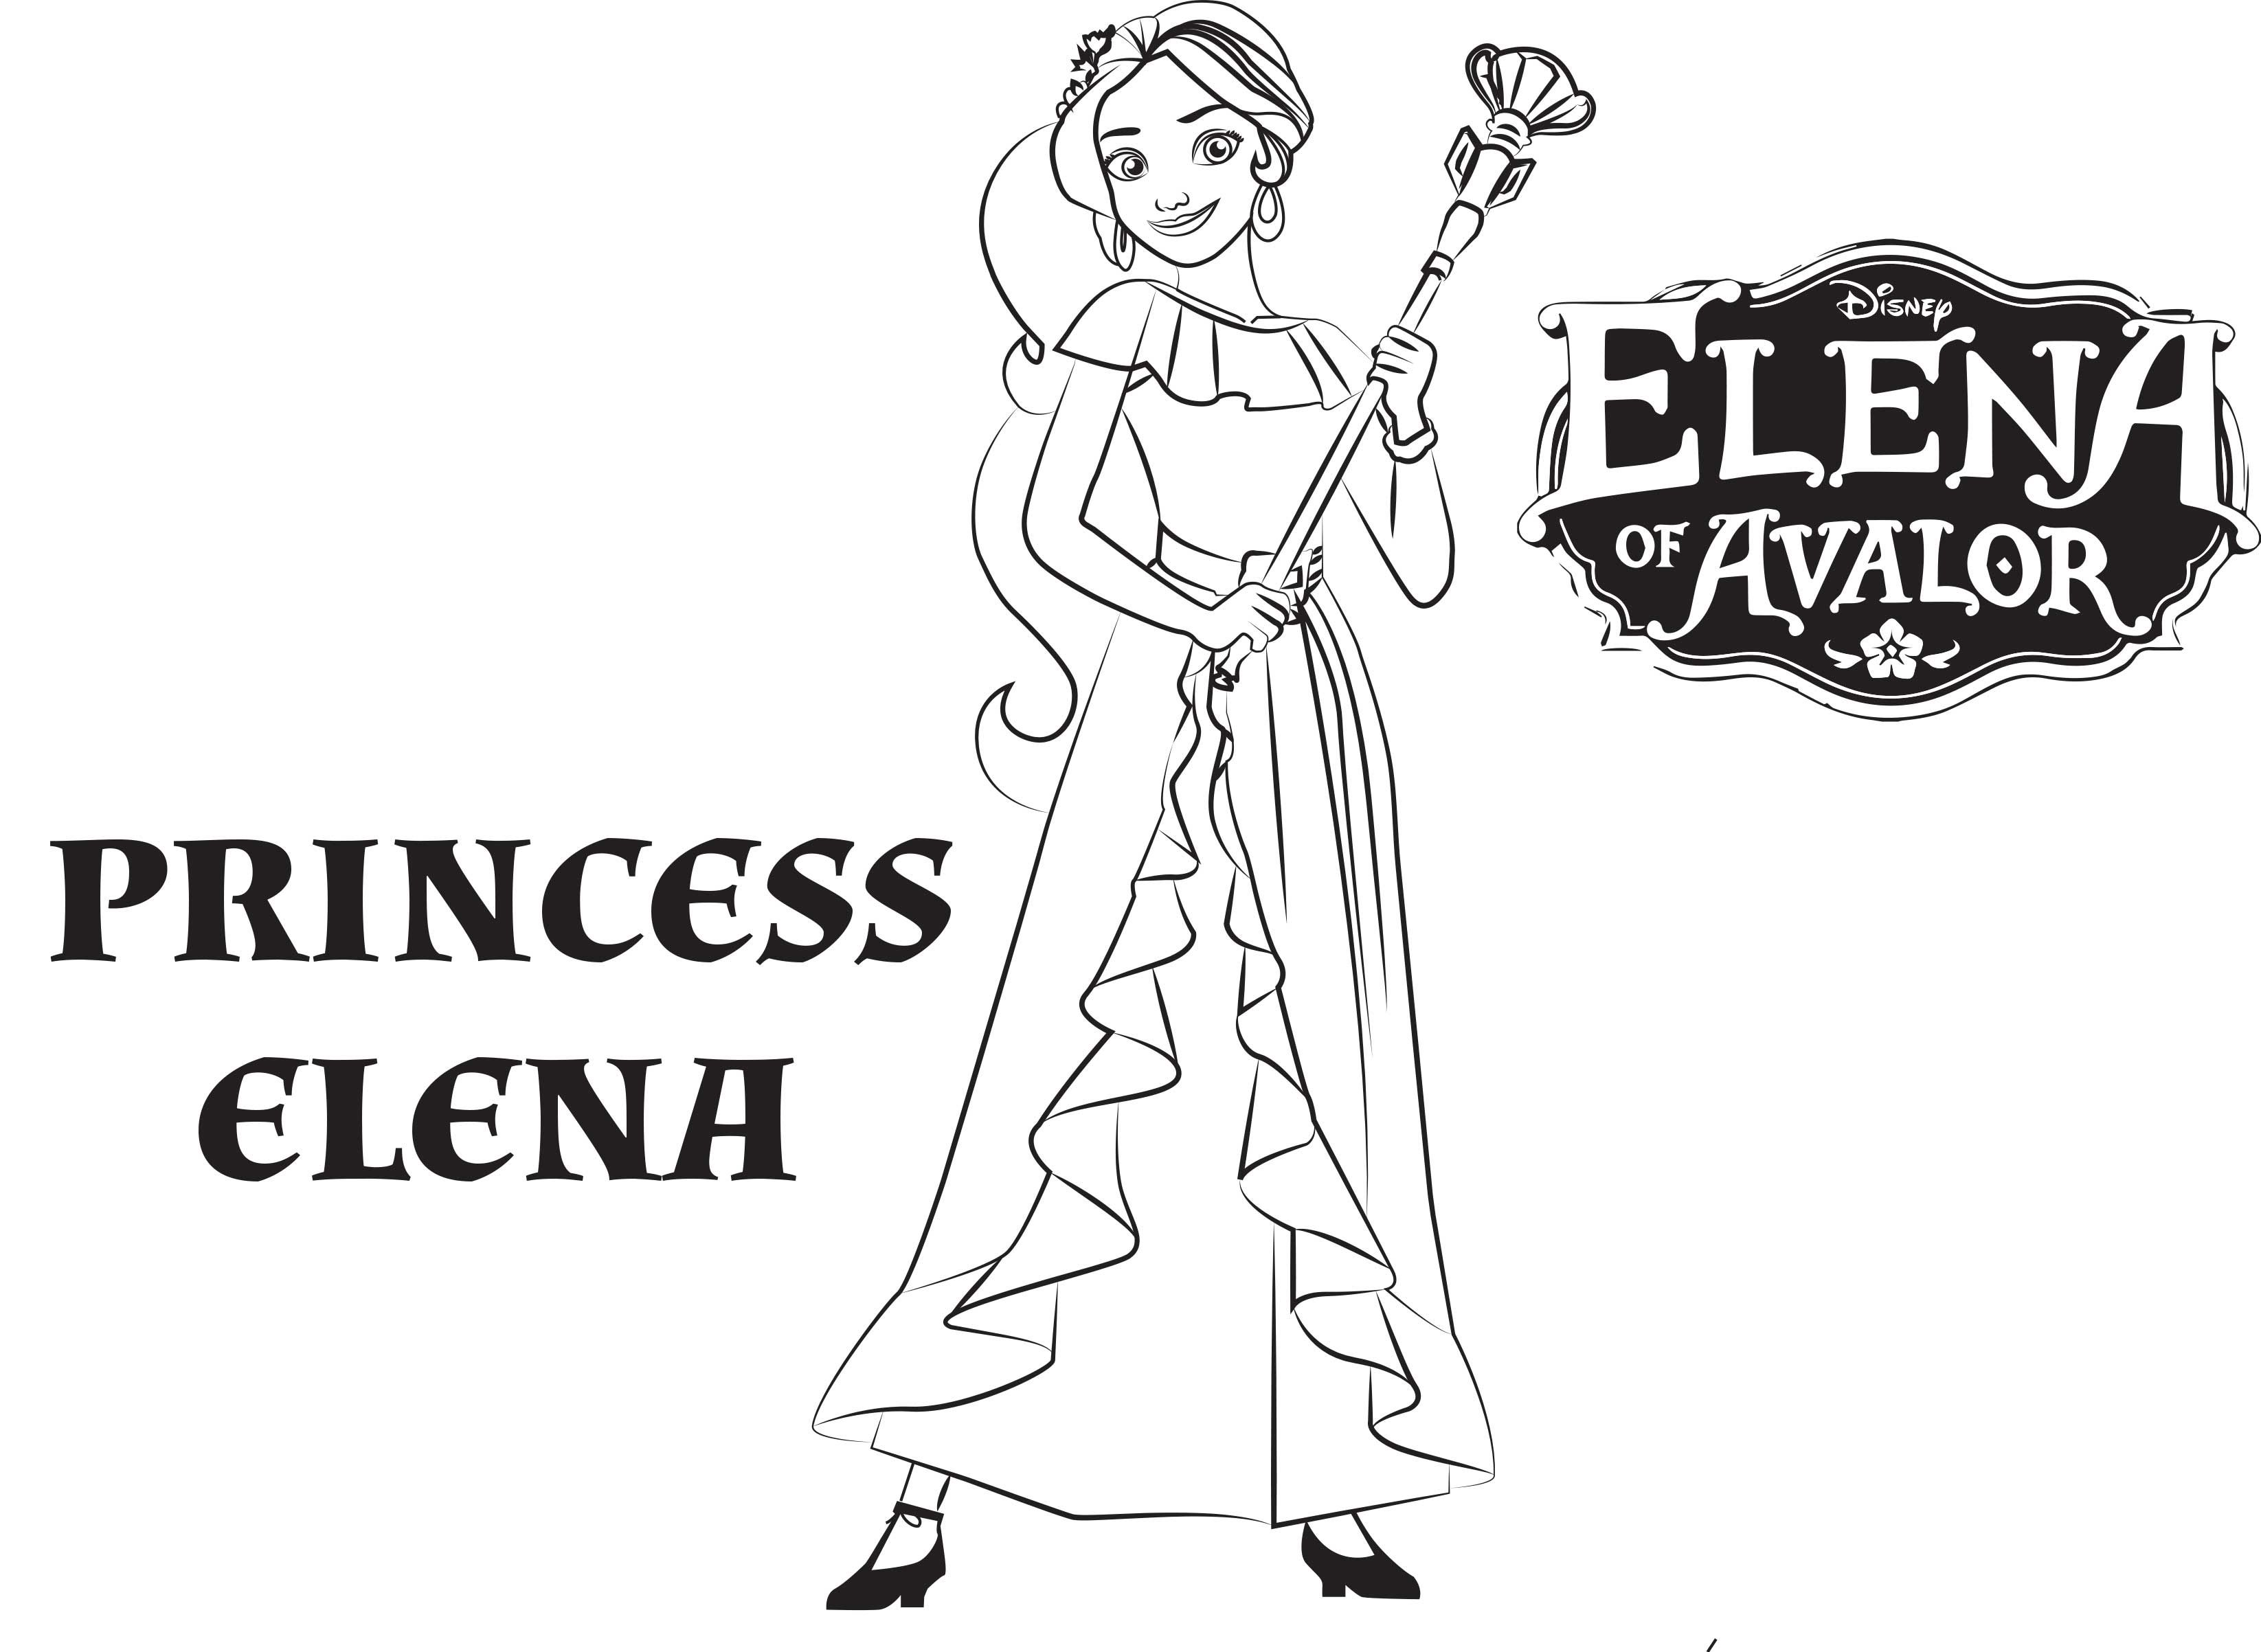 Disneys Elena Of Avalor Coloring Pages Sheet Free Disney Printable Color Page